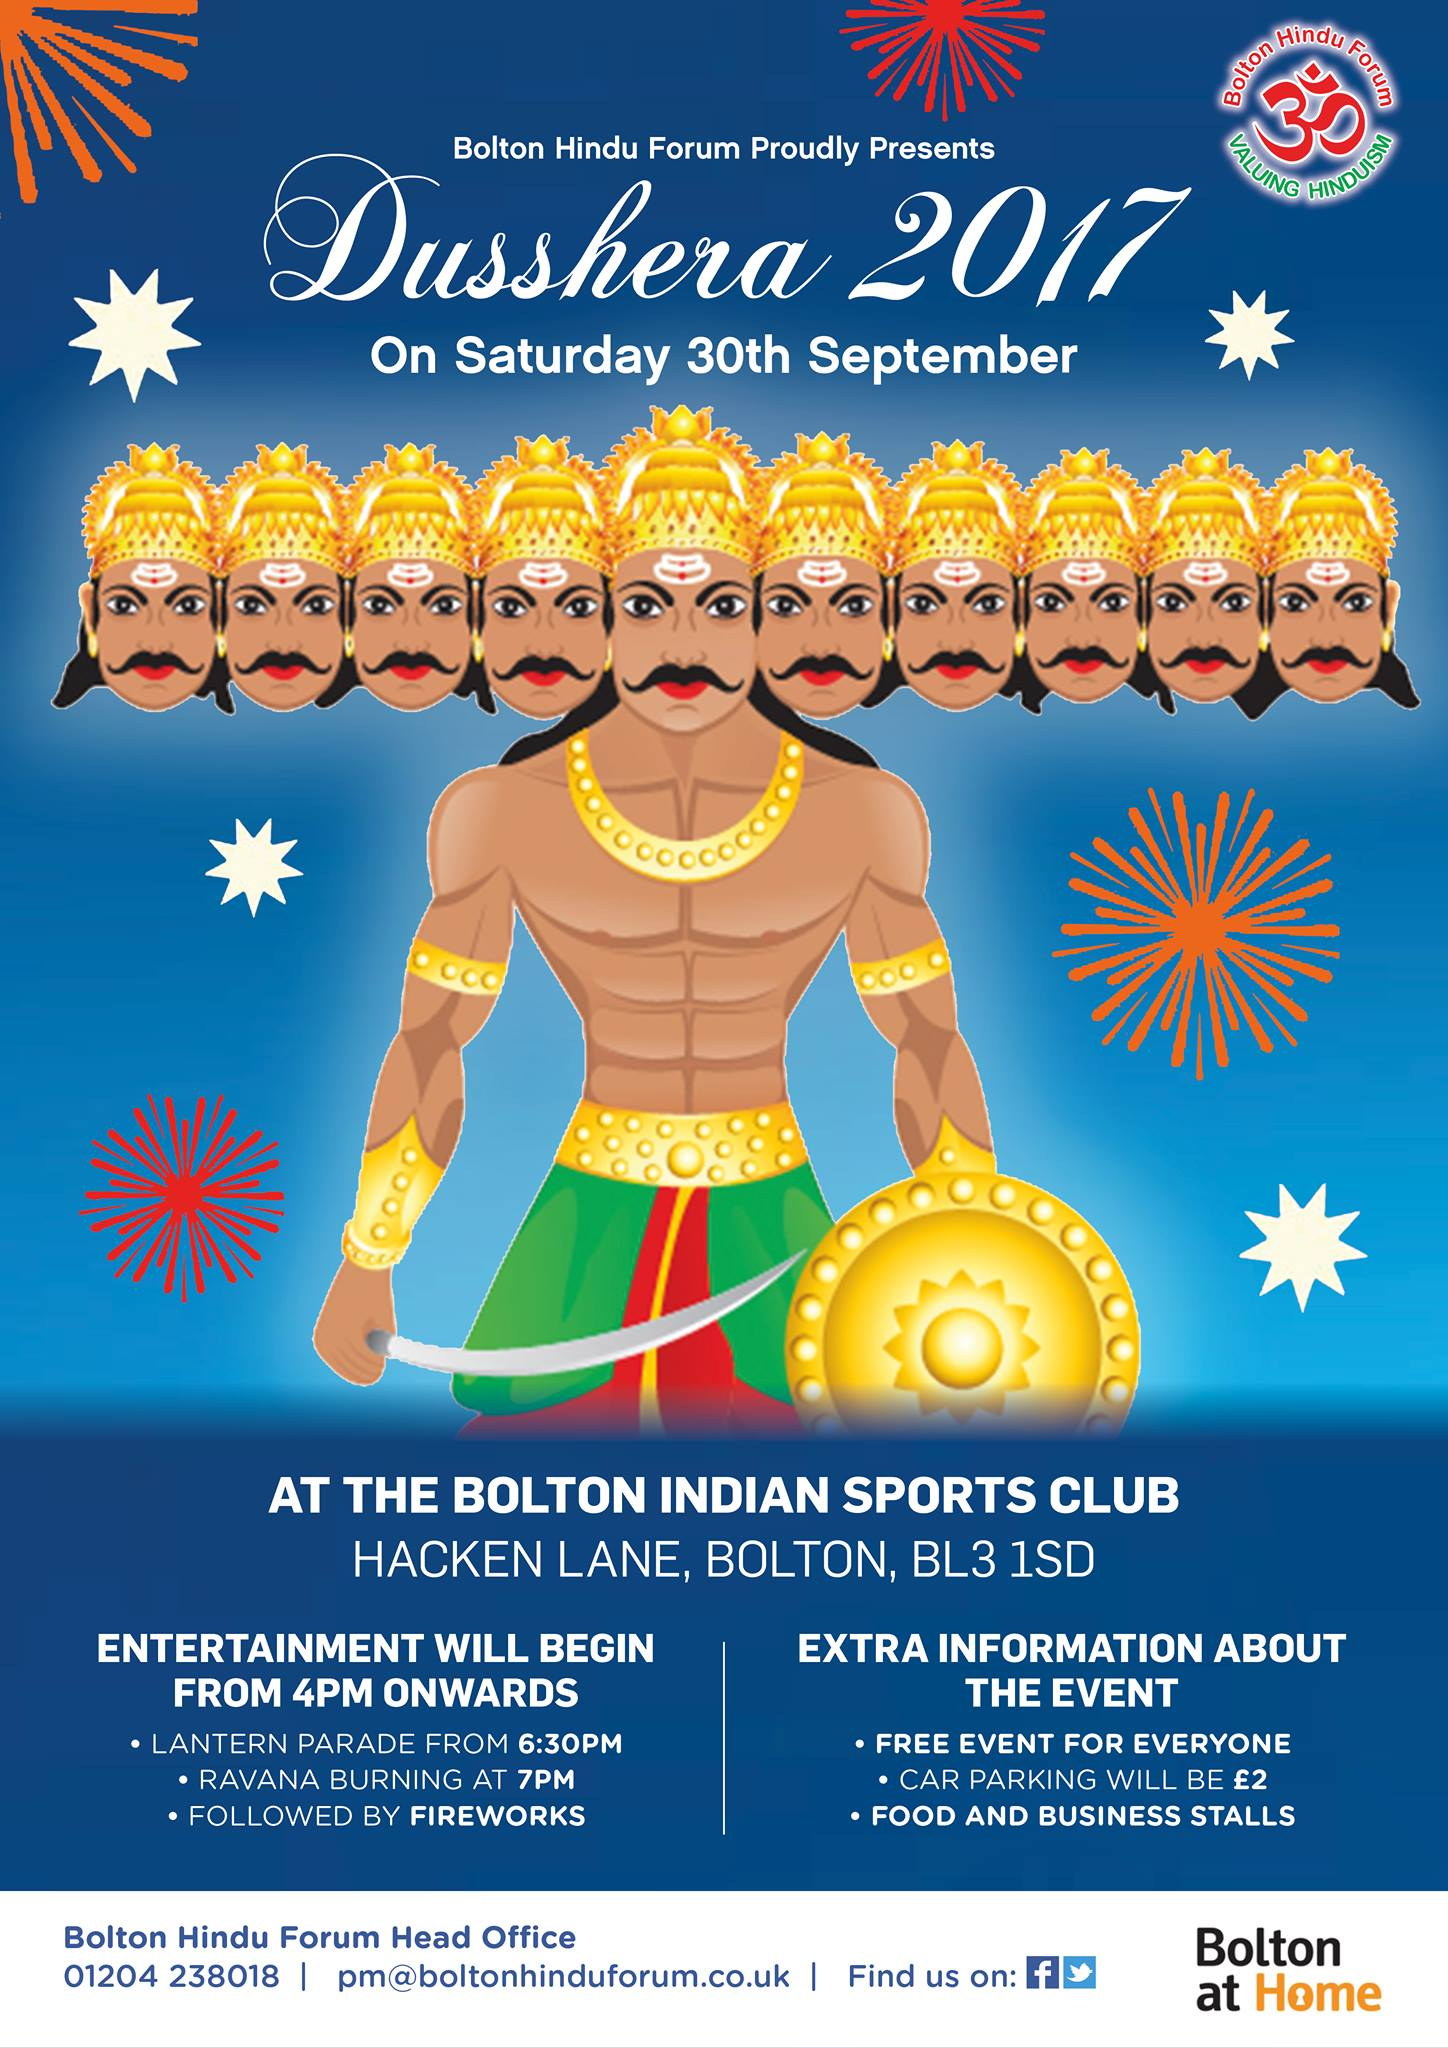 bolton hindu forum invite to dusshera 2017